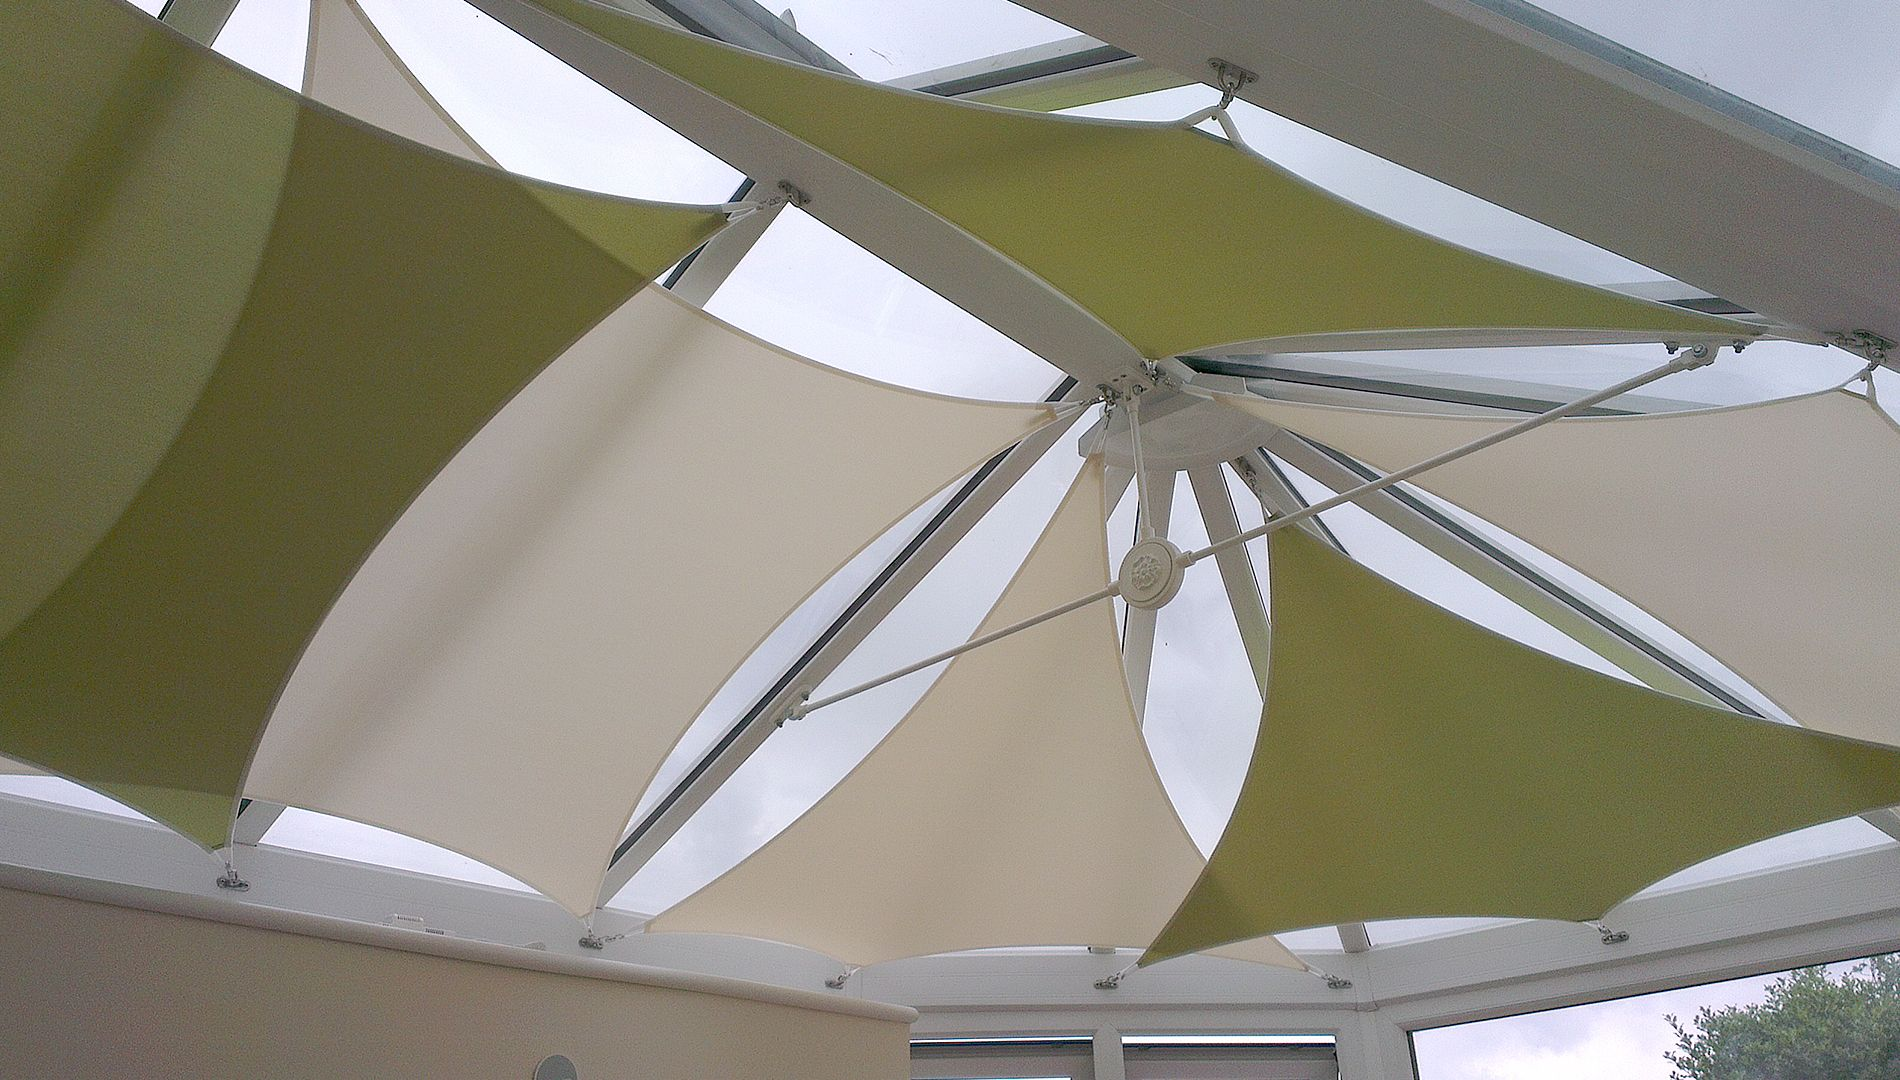 Inshade Sbi Awnings Verandas And Accessories Conservatory Interiors Conservatory Roof Shade Sail